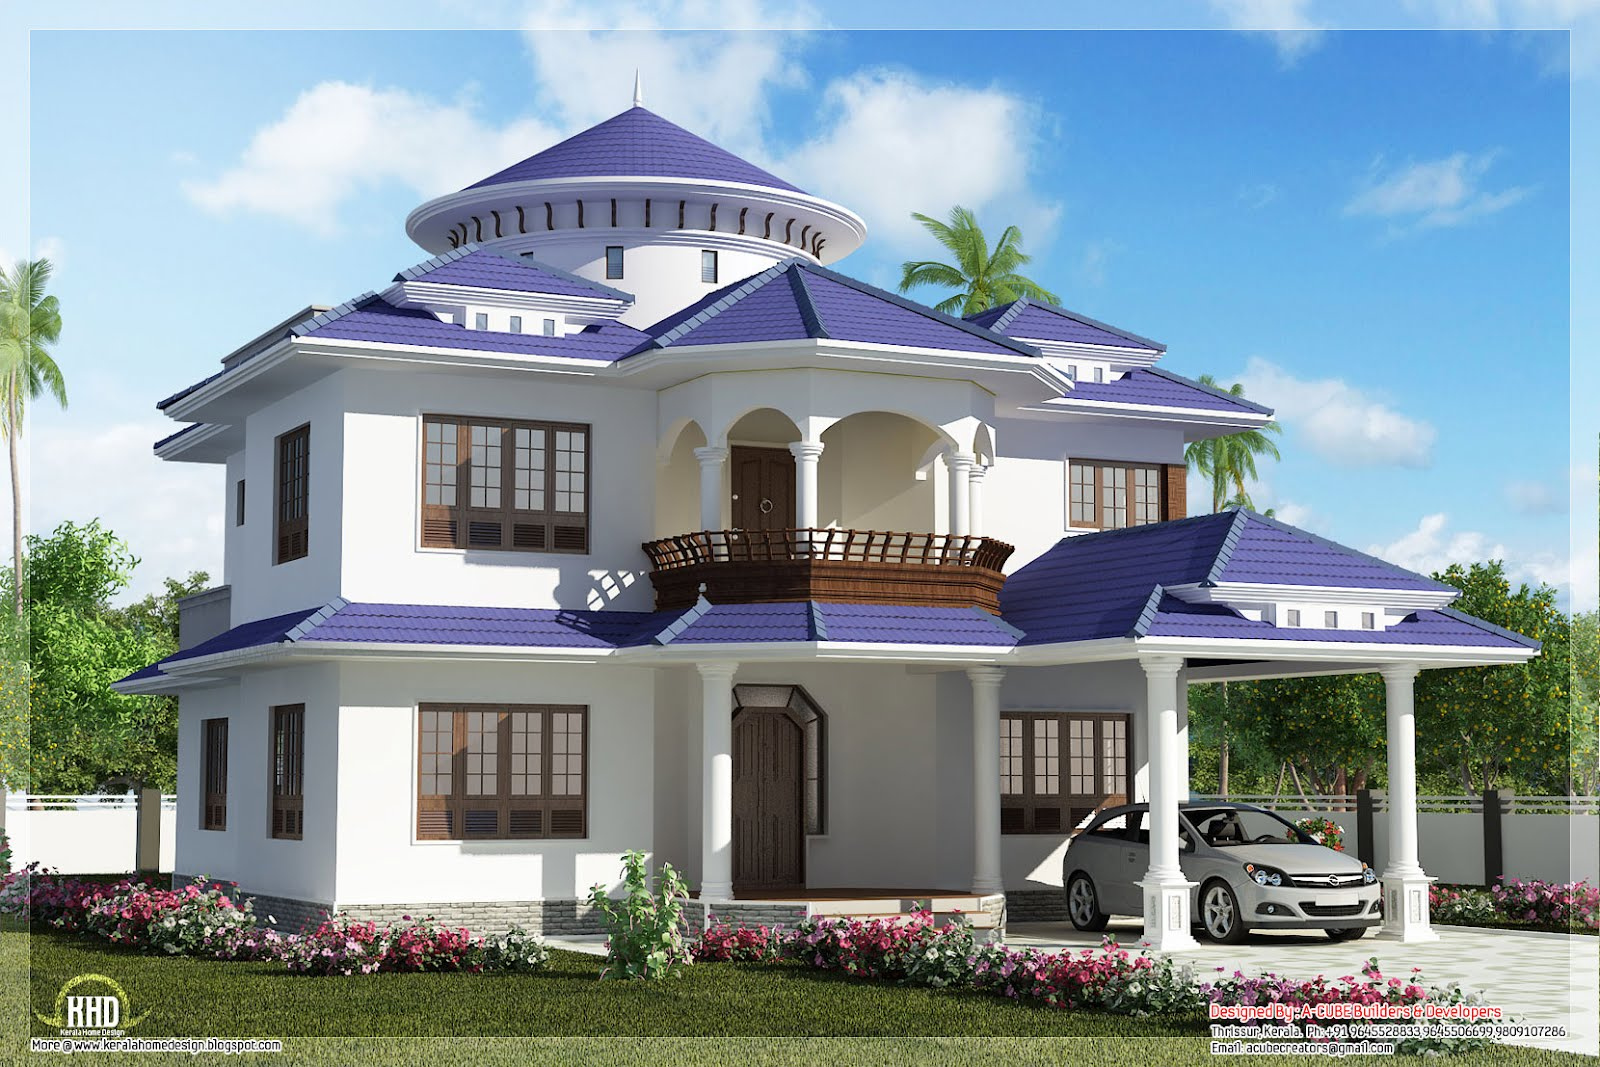 Beautiful dream home design in 2800 kerala home design and floor plans Dream house builder